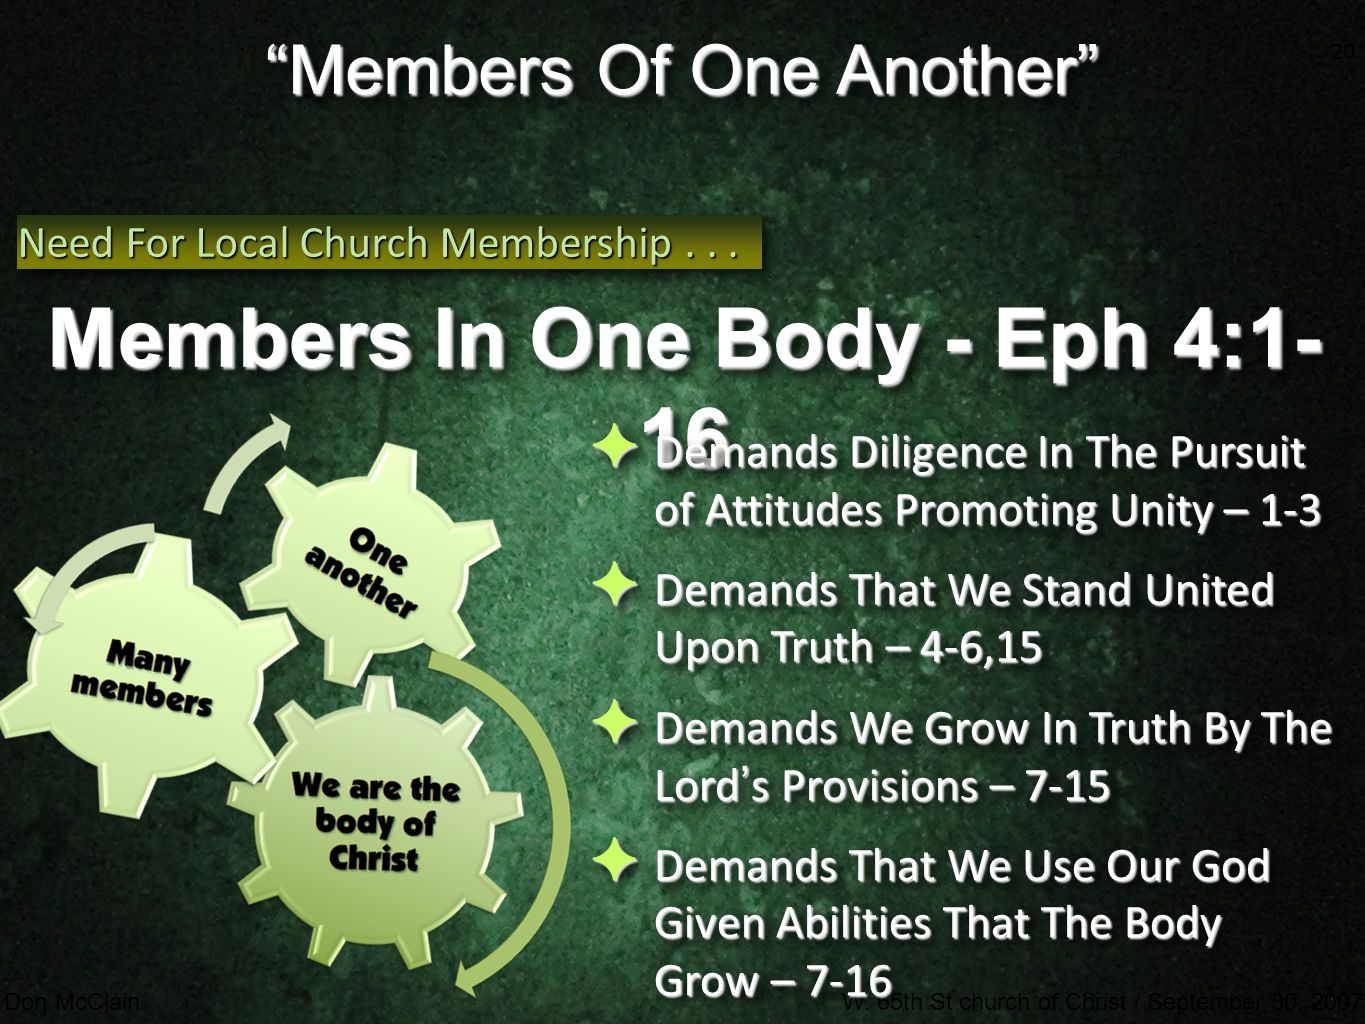 """20 Don McClainW. 65th St church of Christ / September 30, 2007 20 """"Members Of One Another"""" Members In One Body - Eph 4:1- 16 Need For Local Church Mem"""